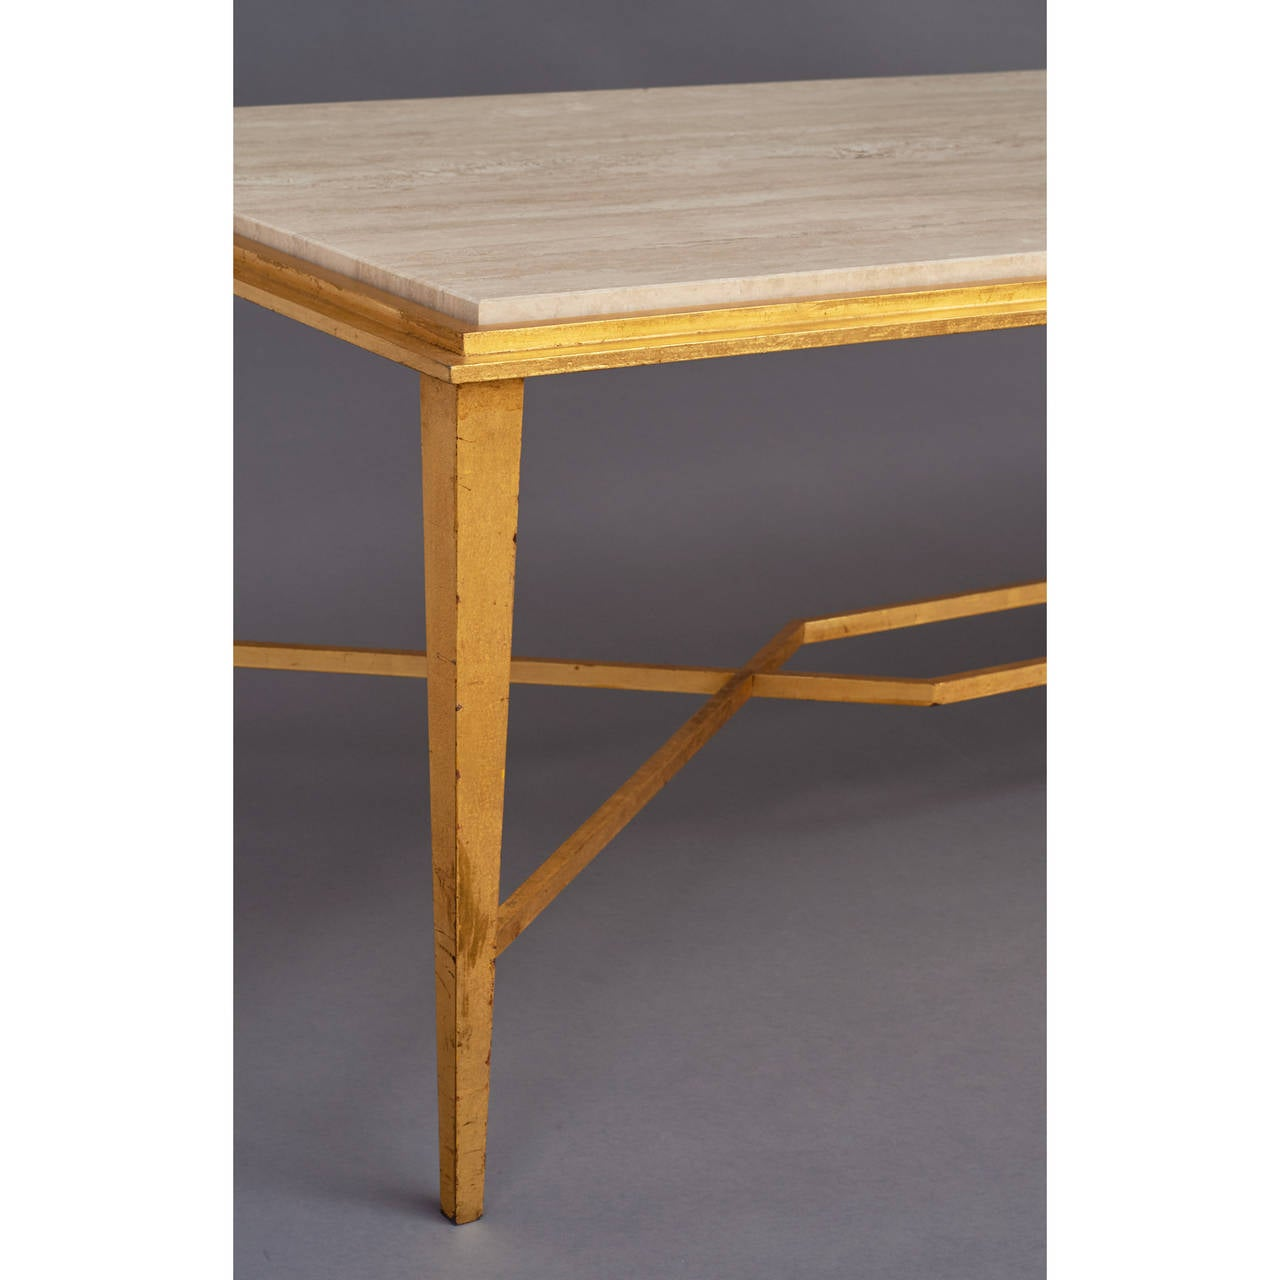 Ramsay. Important long gilt wrought iron table with stepped frame and geometric stretcher. Polished travertine top. Signed, France, 1950s. Dimensions: 63 x 24 x 18.5 H.